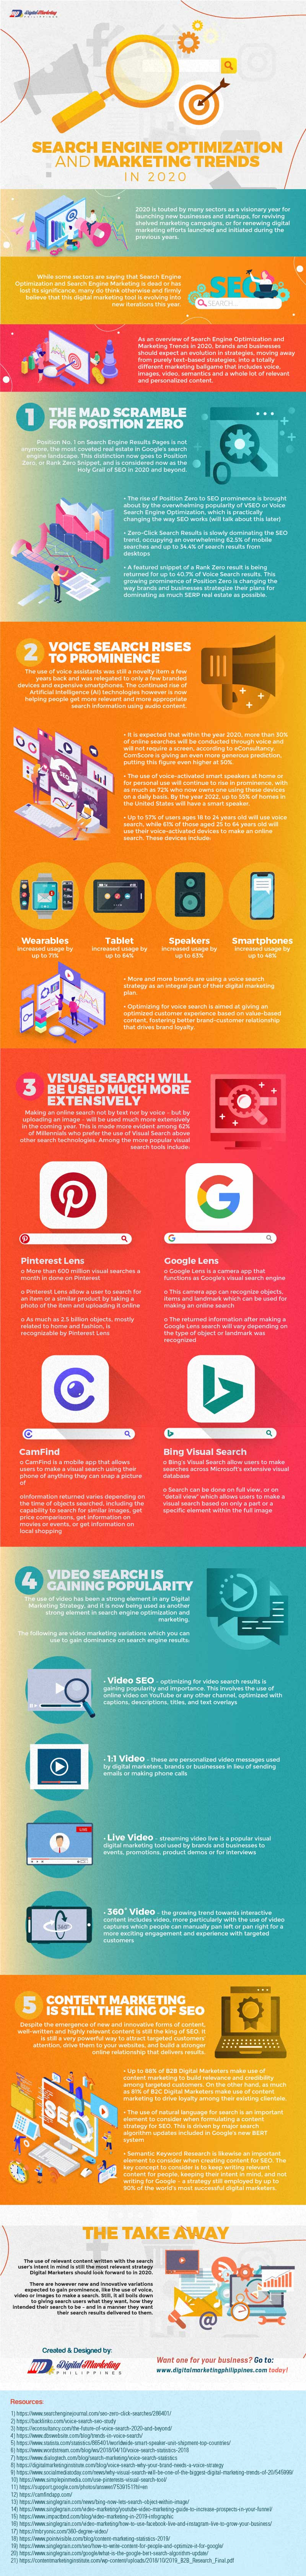 Search-Engine-Optimization-And-Marketing-Trends-In-2020